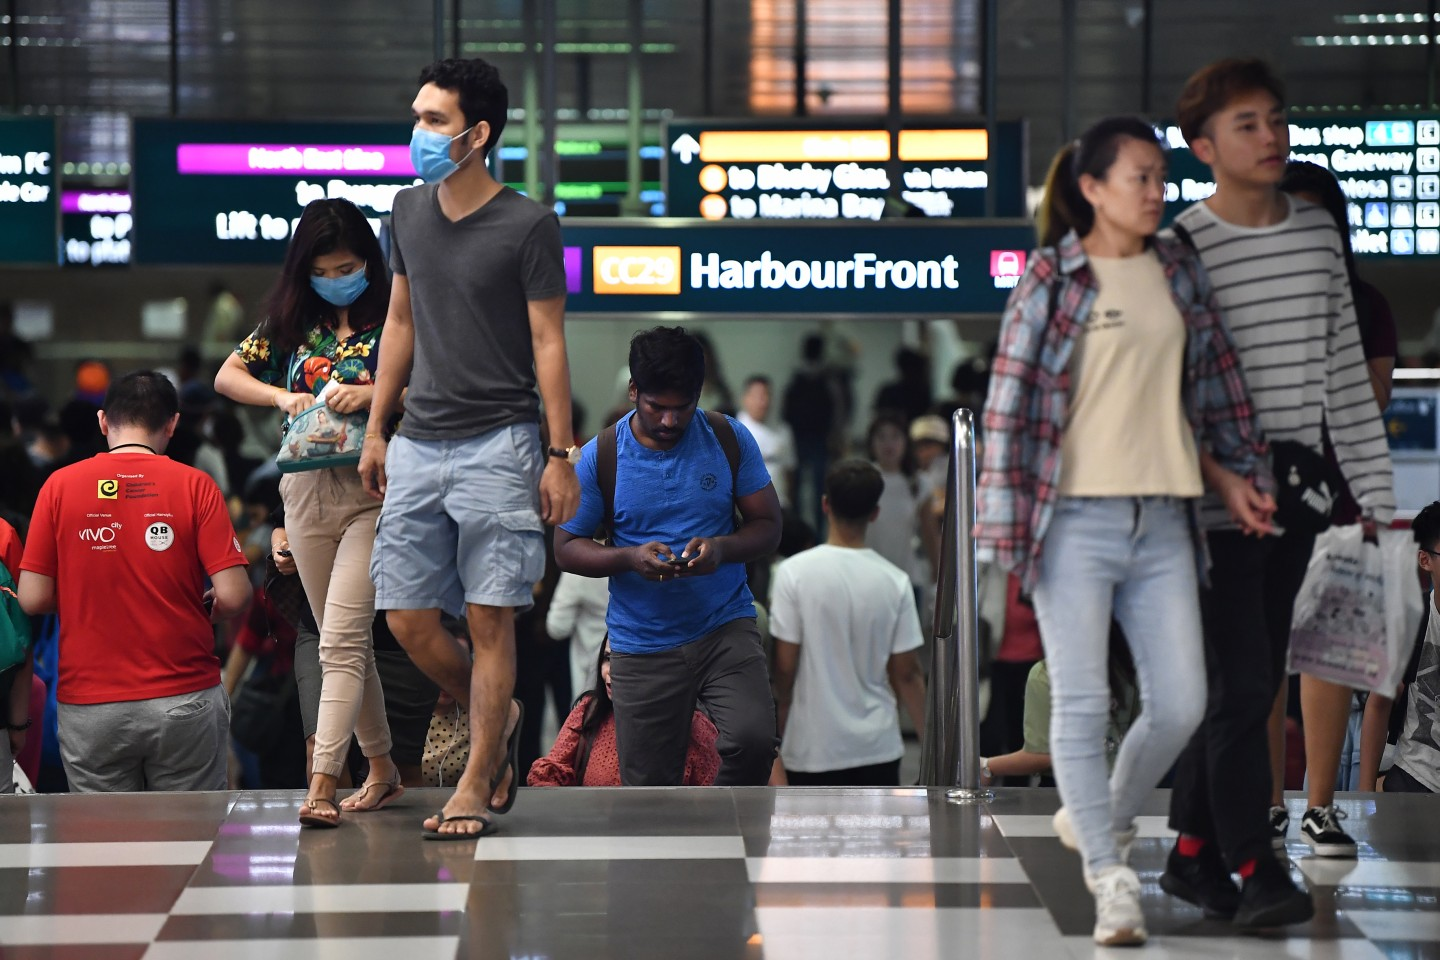 People wearing masks at VivoCity near HarbourFront MRT station in Singapore on 24 Jan 2020. (SPH)